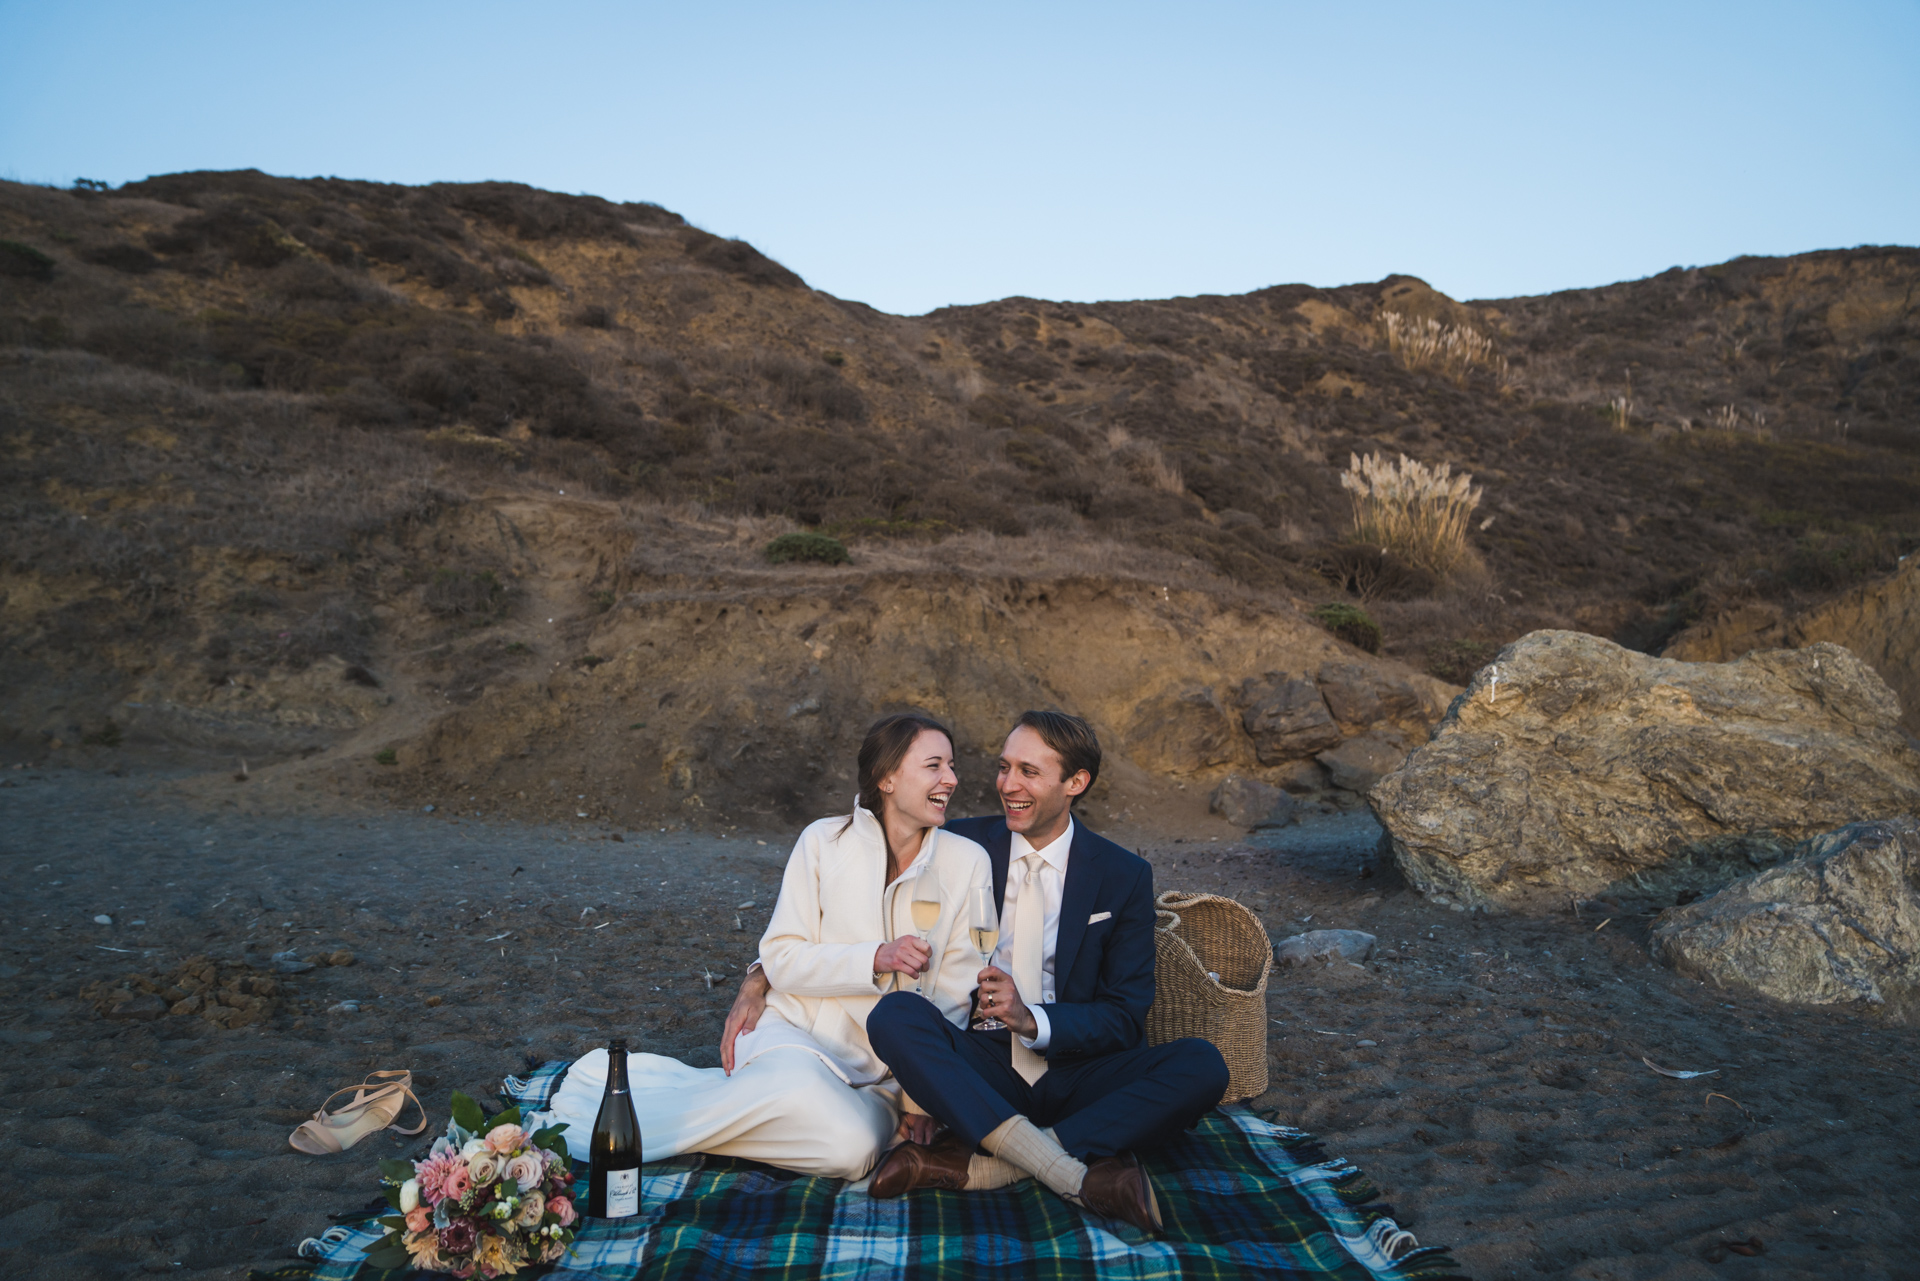 Cliffside Park Wedding Image, State Route 1 - SF, CA | A beach blanket cocktail hour